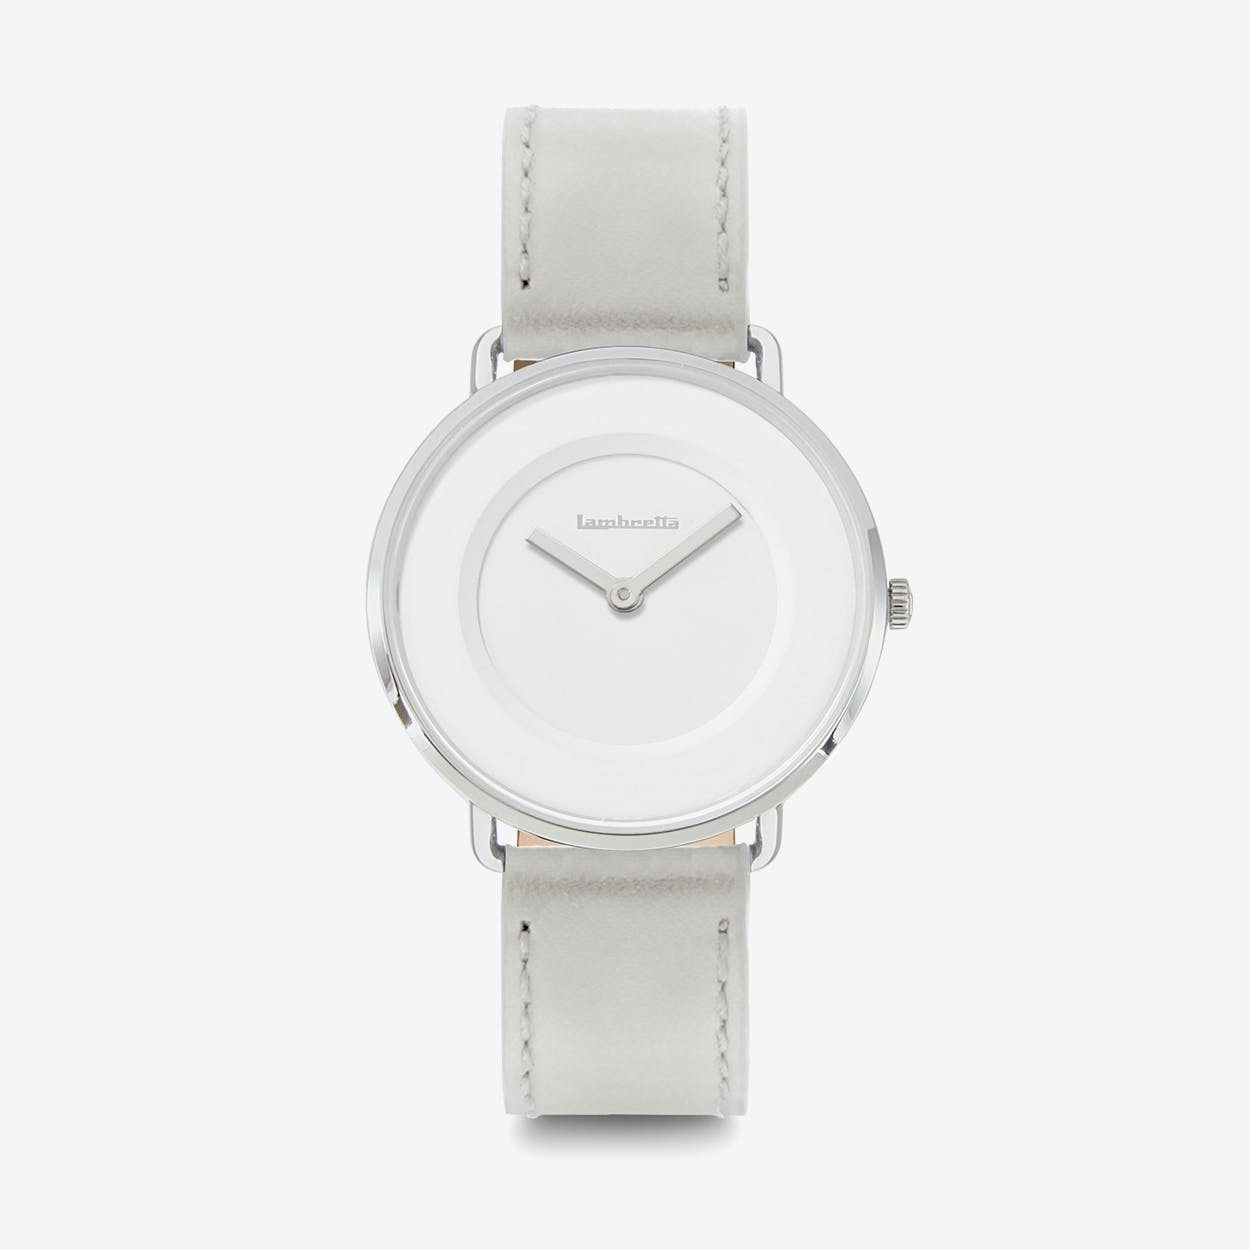 Mia 34 Watch in Silver w/ Grey Leather Strap & White Face